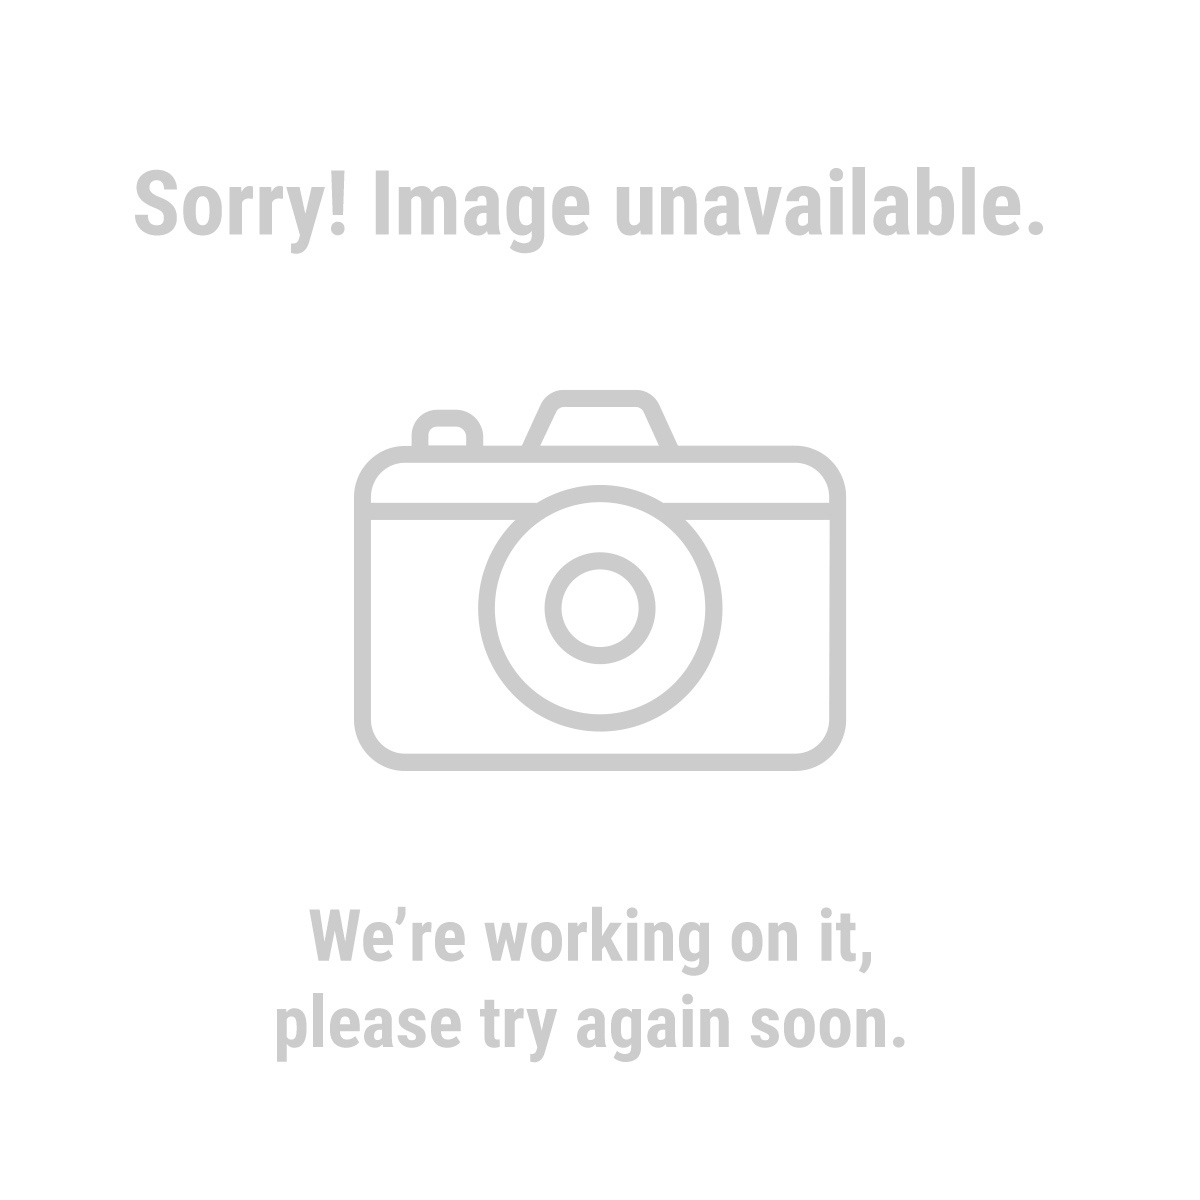 18 volt cordless variable speed reciprocating saw with keyless chuck